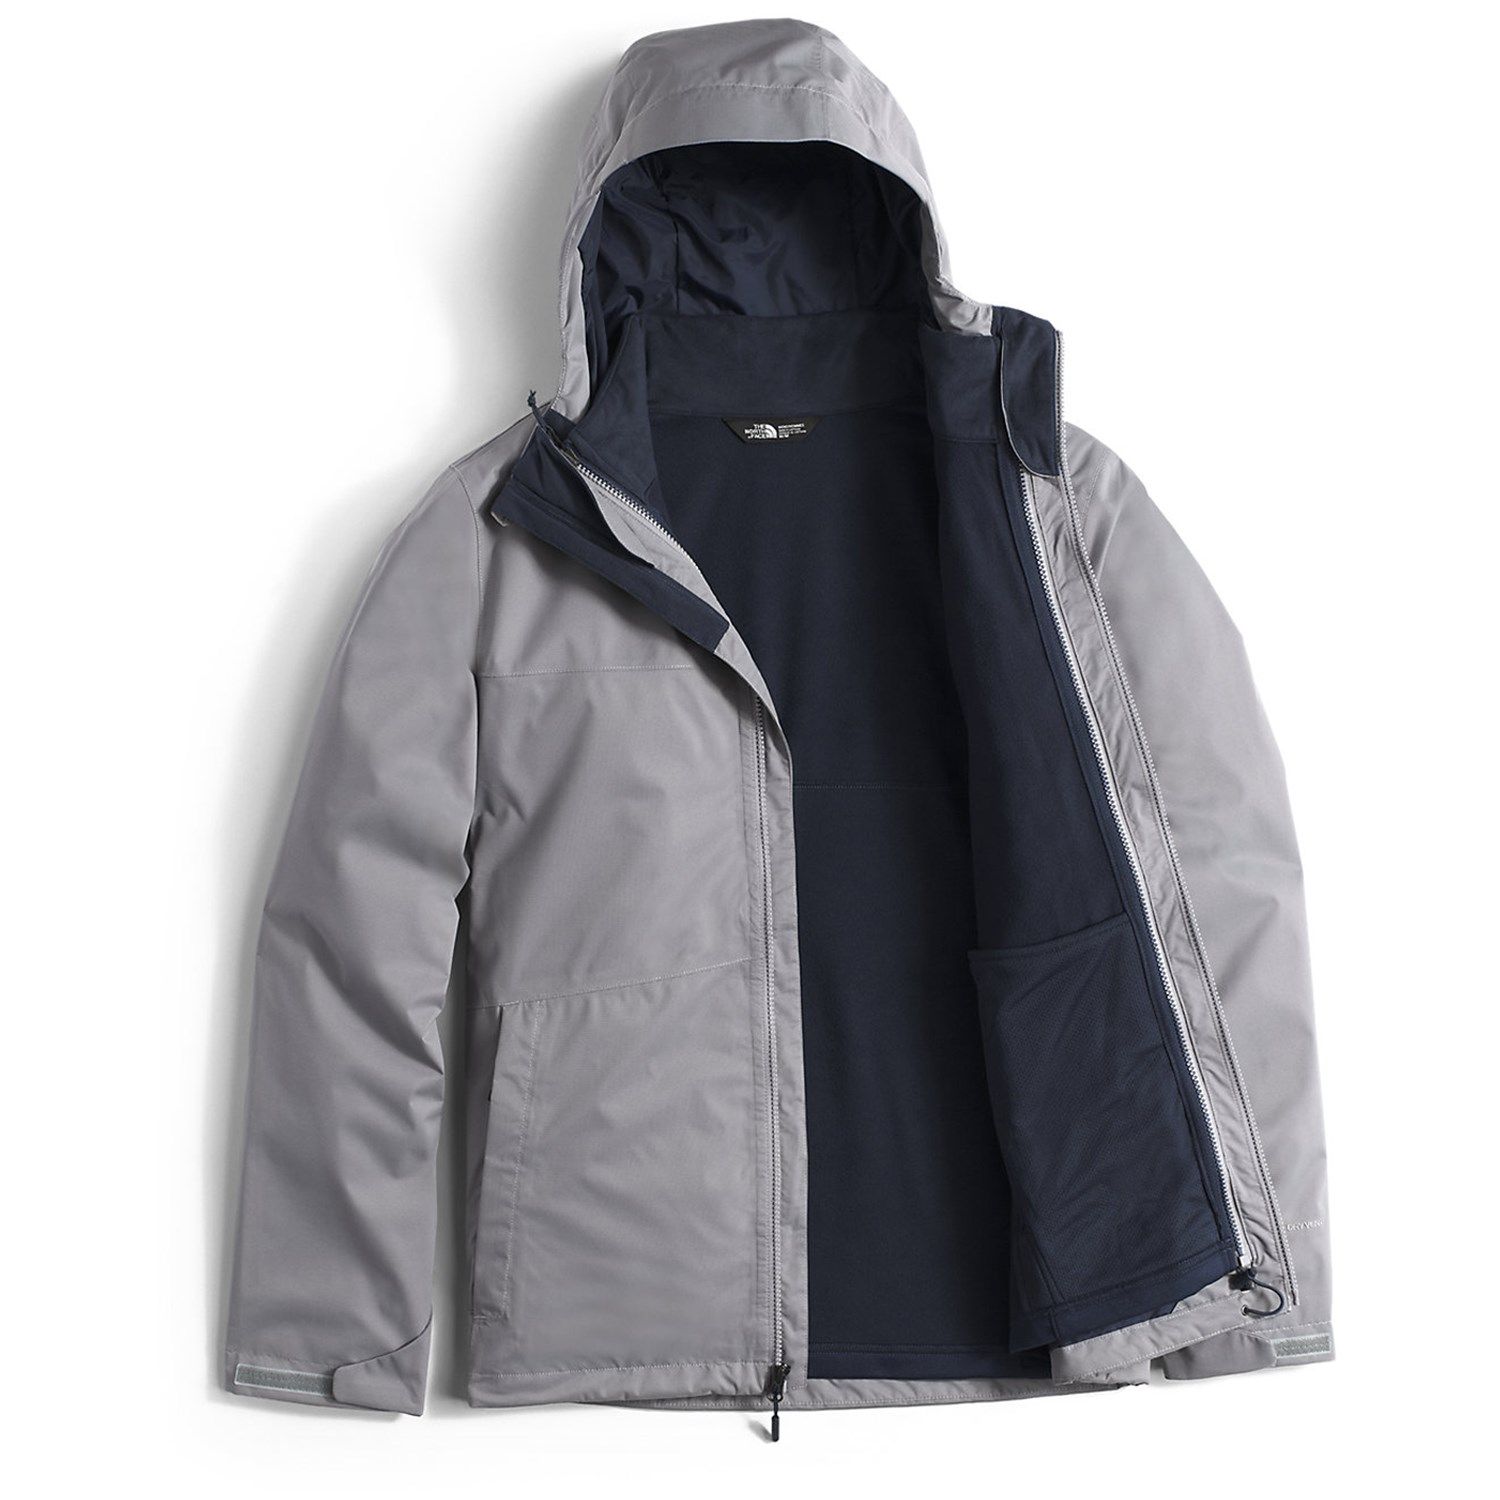 659c1c337 The North Face Arrowood Triclimate Jacket